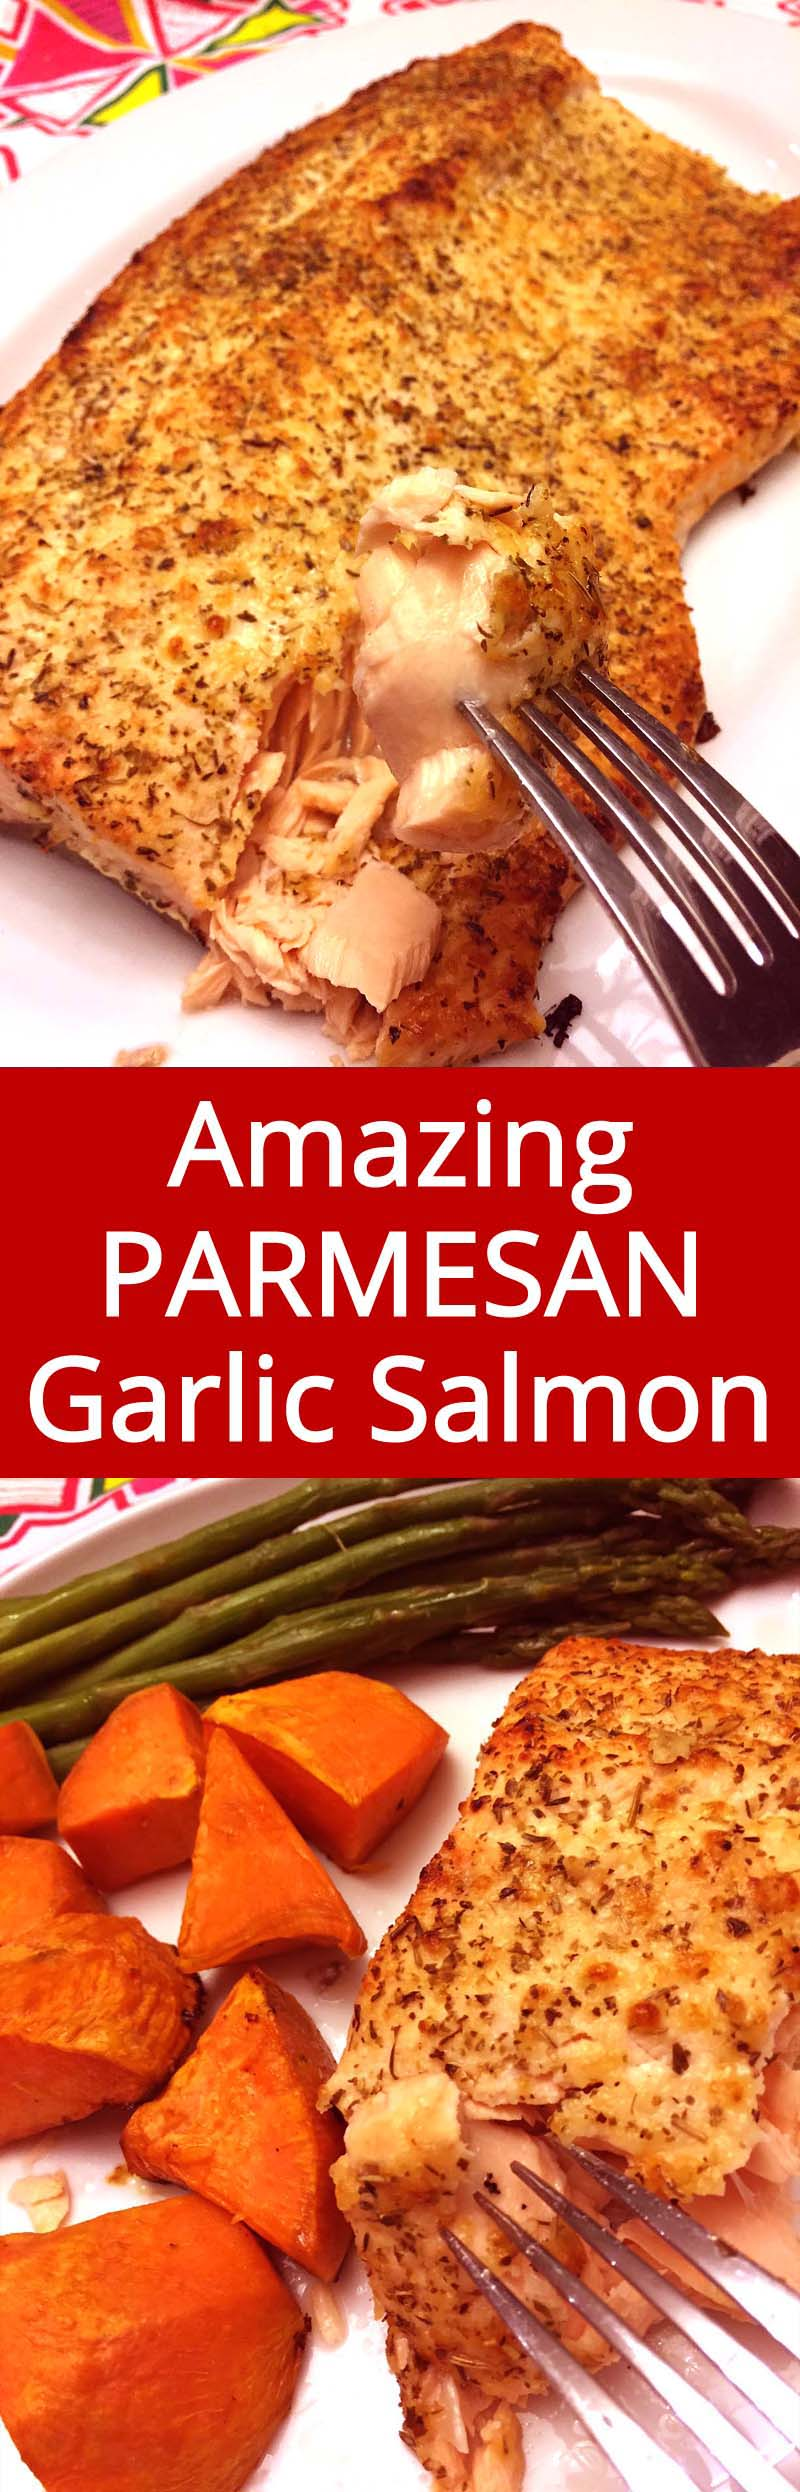 Crispy Parmesan crust on the outside, succulent salmon on the inside - this is my favorite salmon recipe ever!